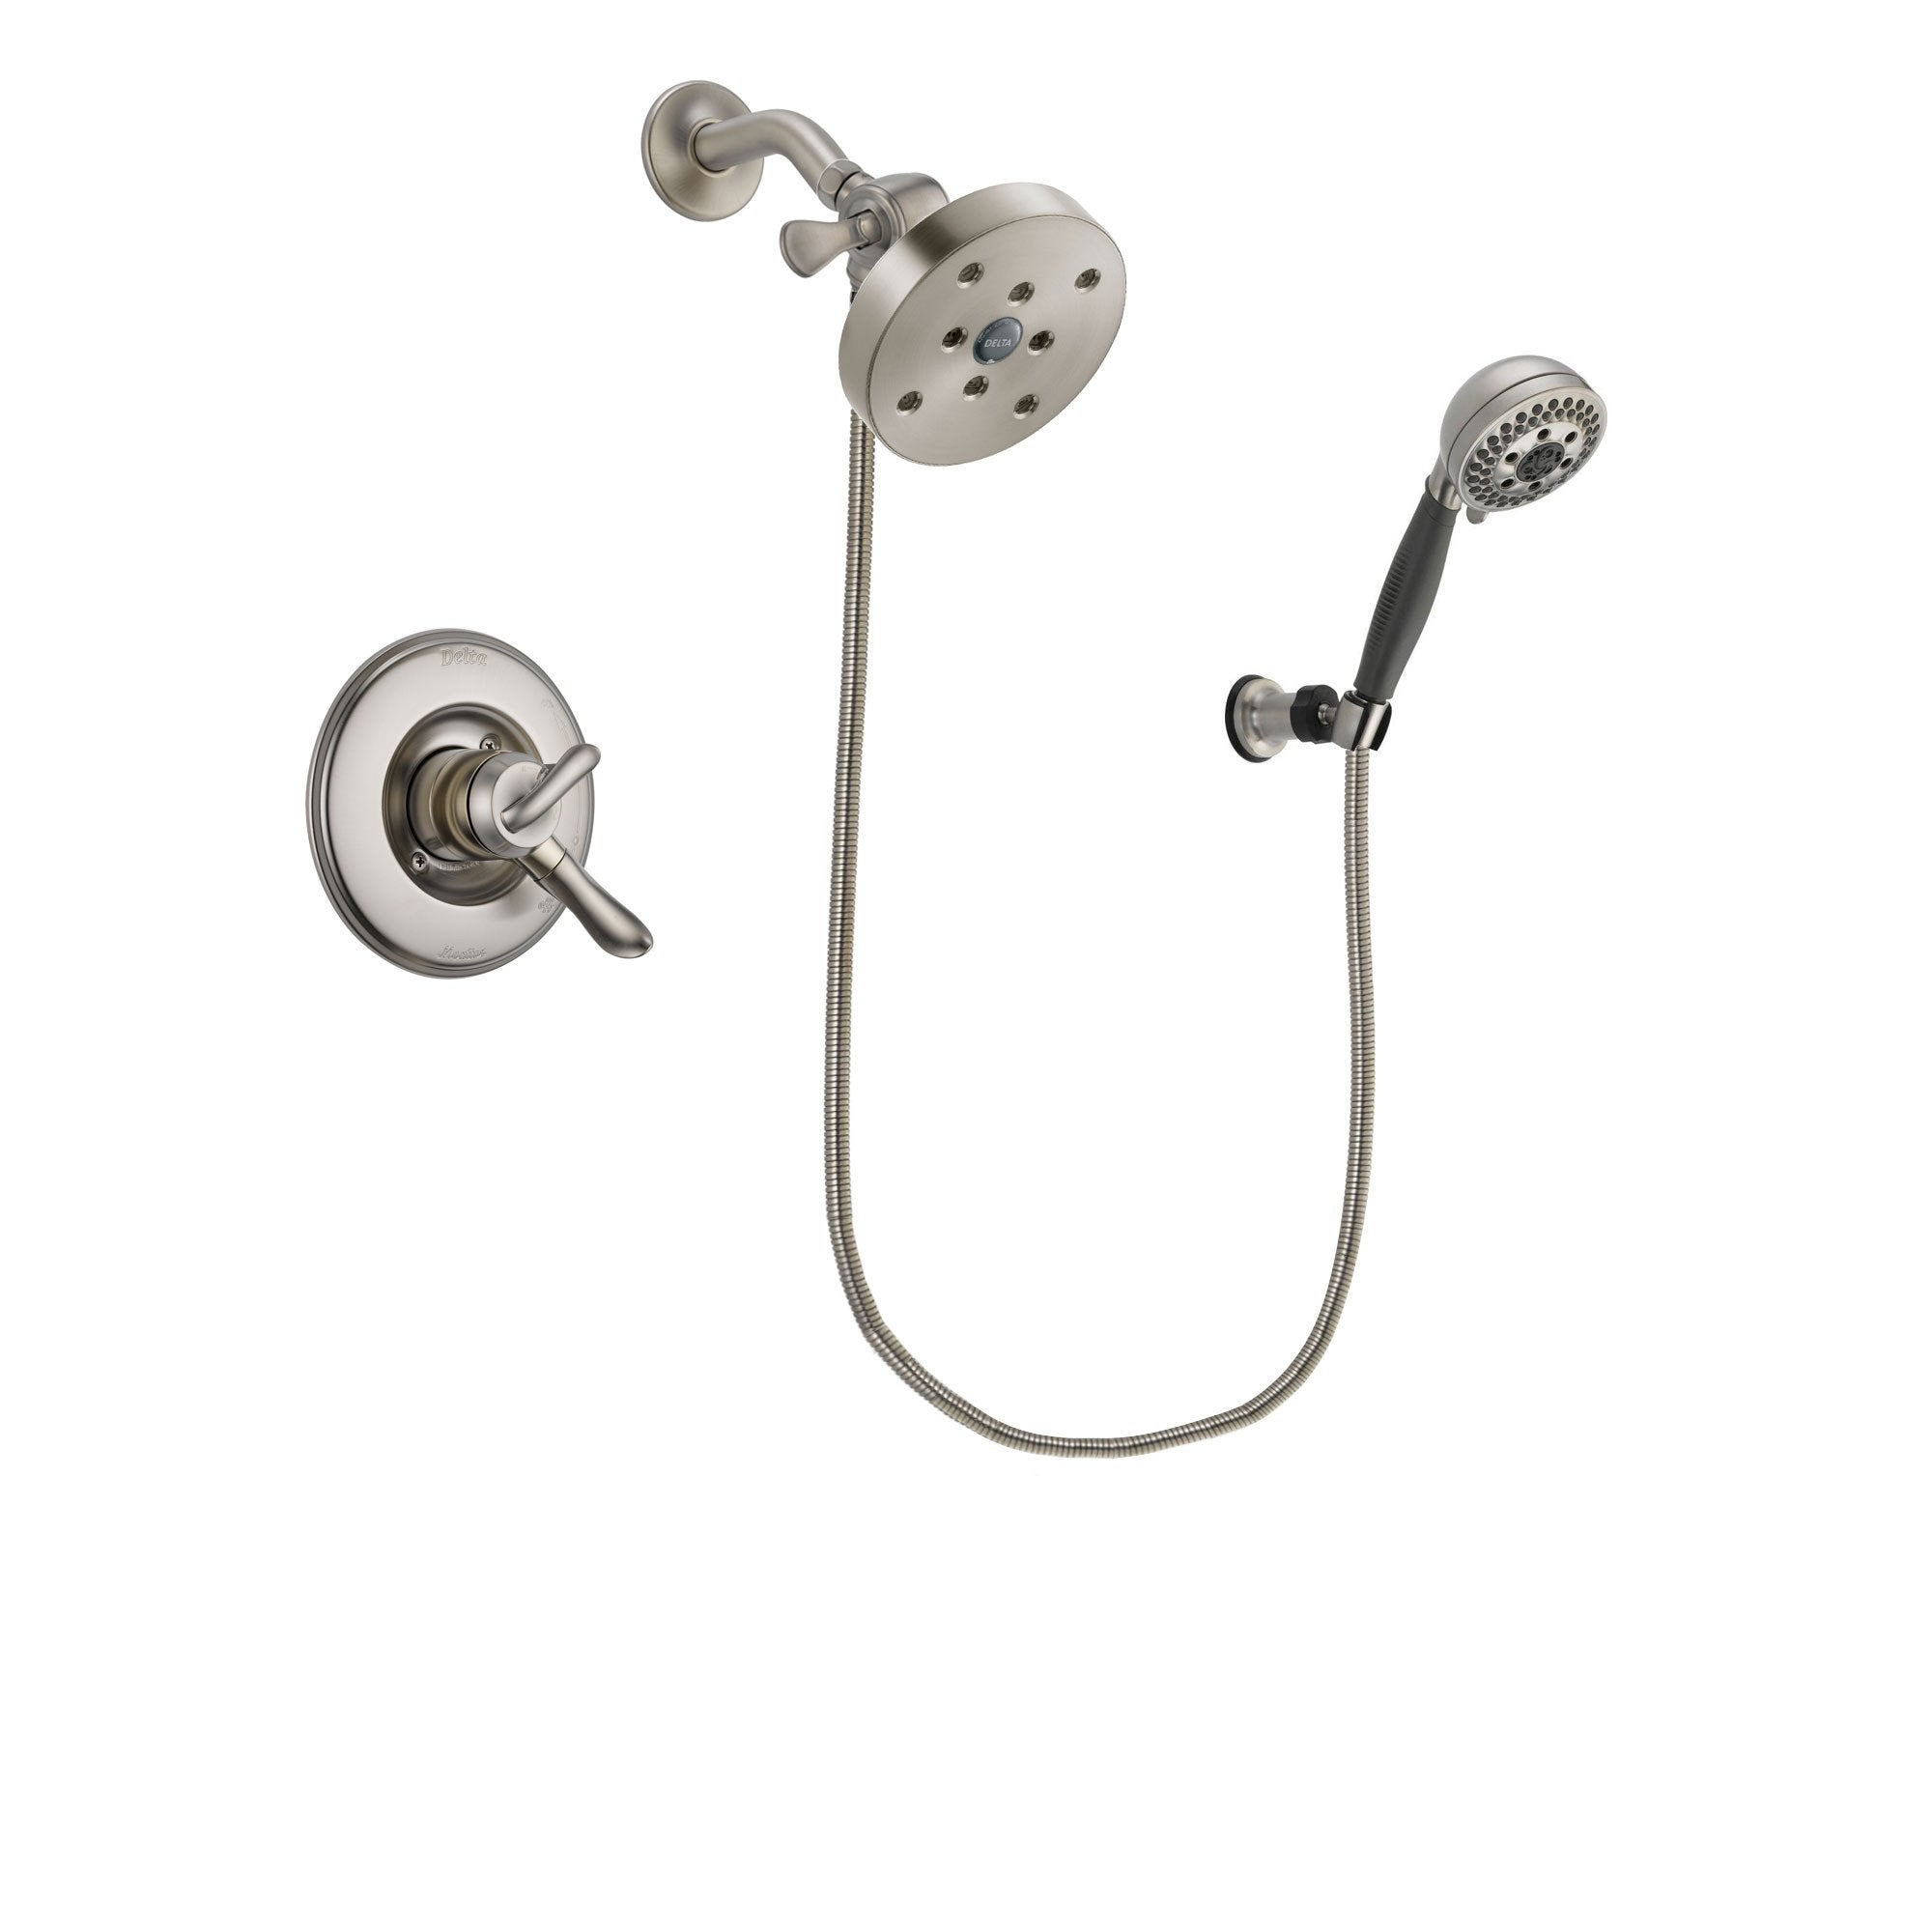 Delta Linden Stainless Steel Finish Shower Faucet System w/ Hand Spray DSP2054V